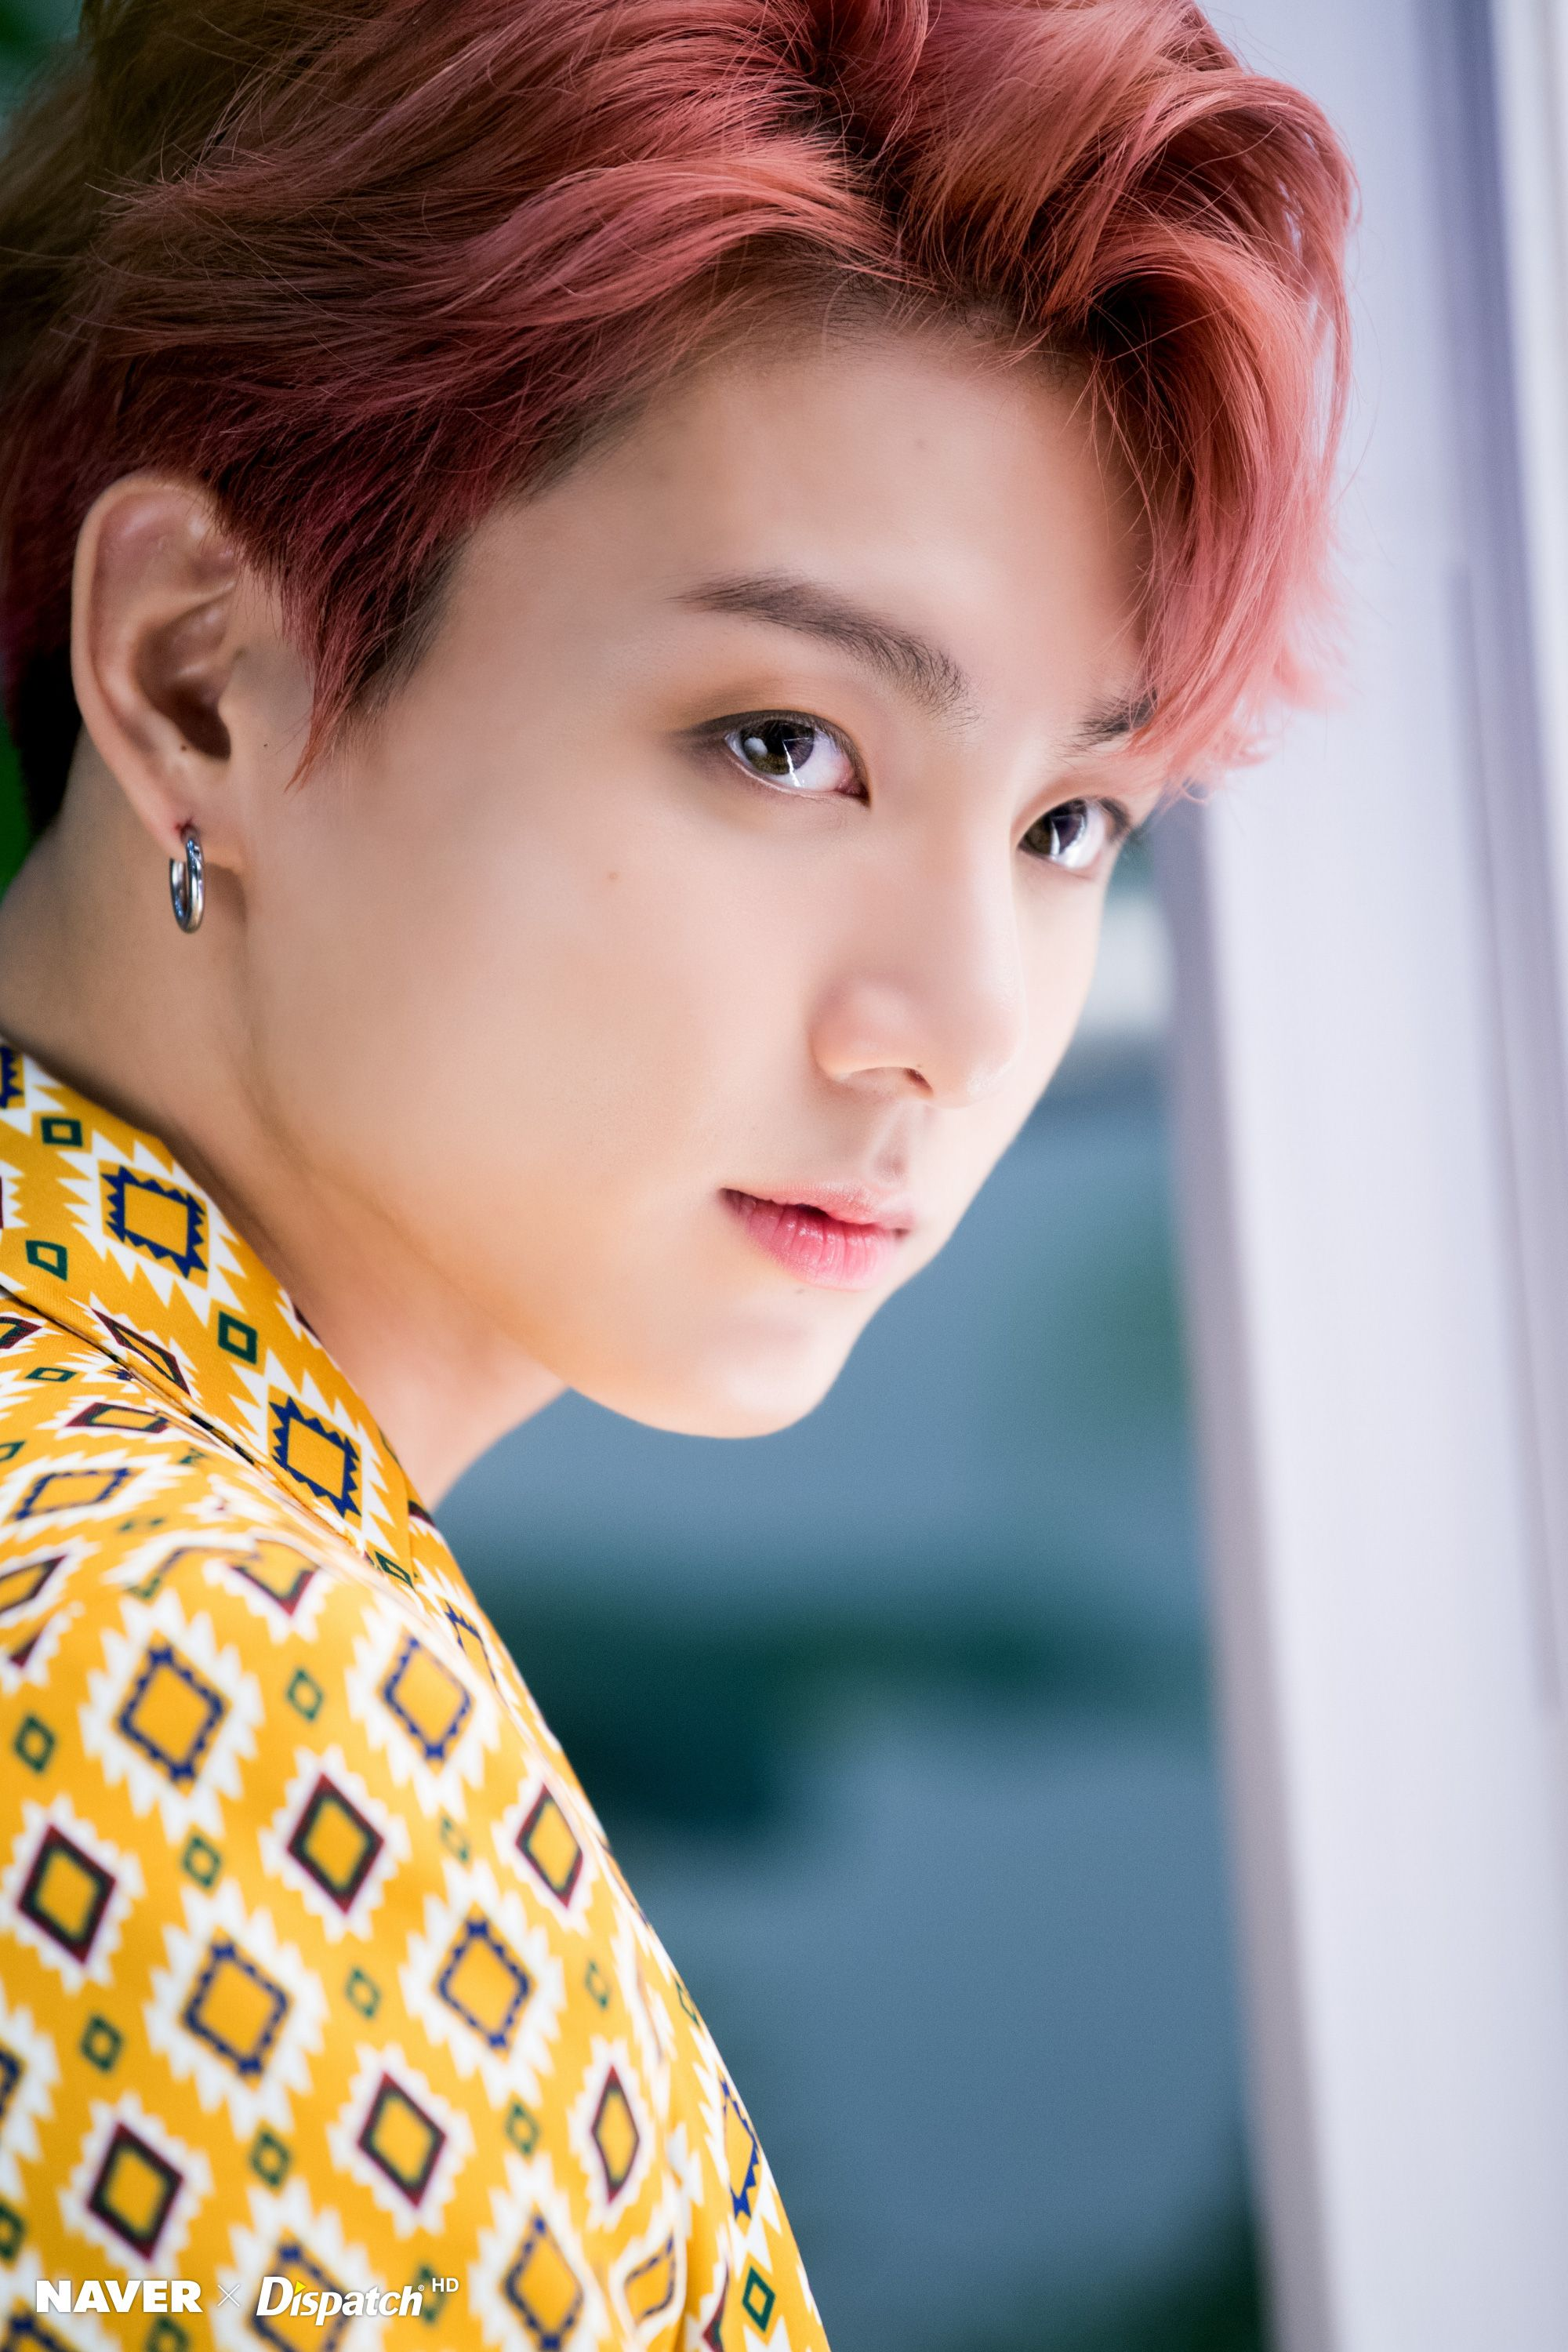 Jungkook Bts X Dispatch Behind The Scenes Of Idol Love_yourself_  E B  _